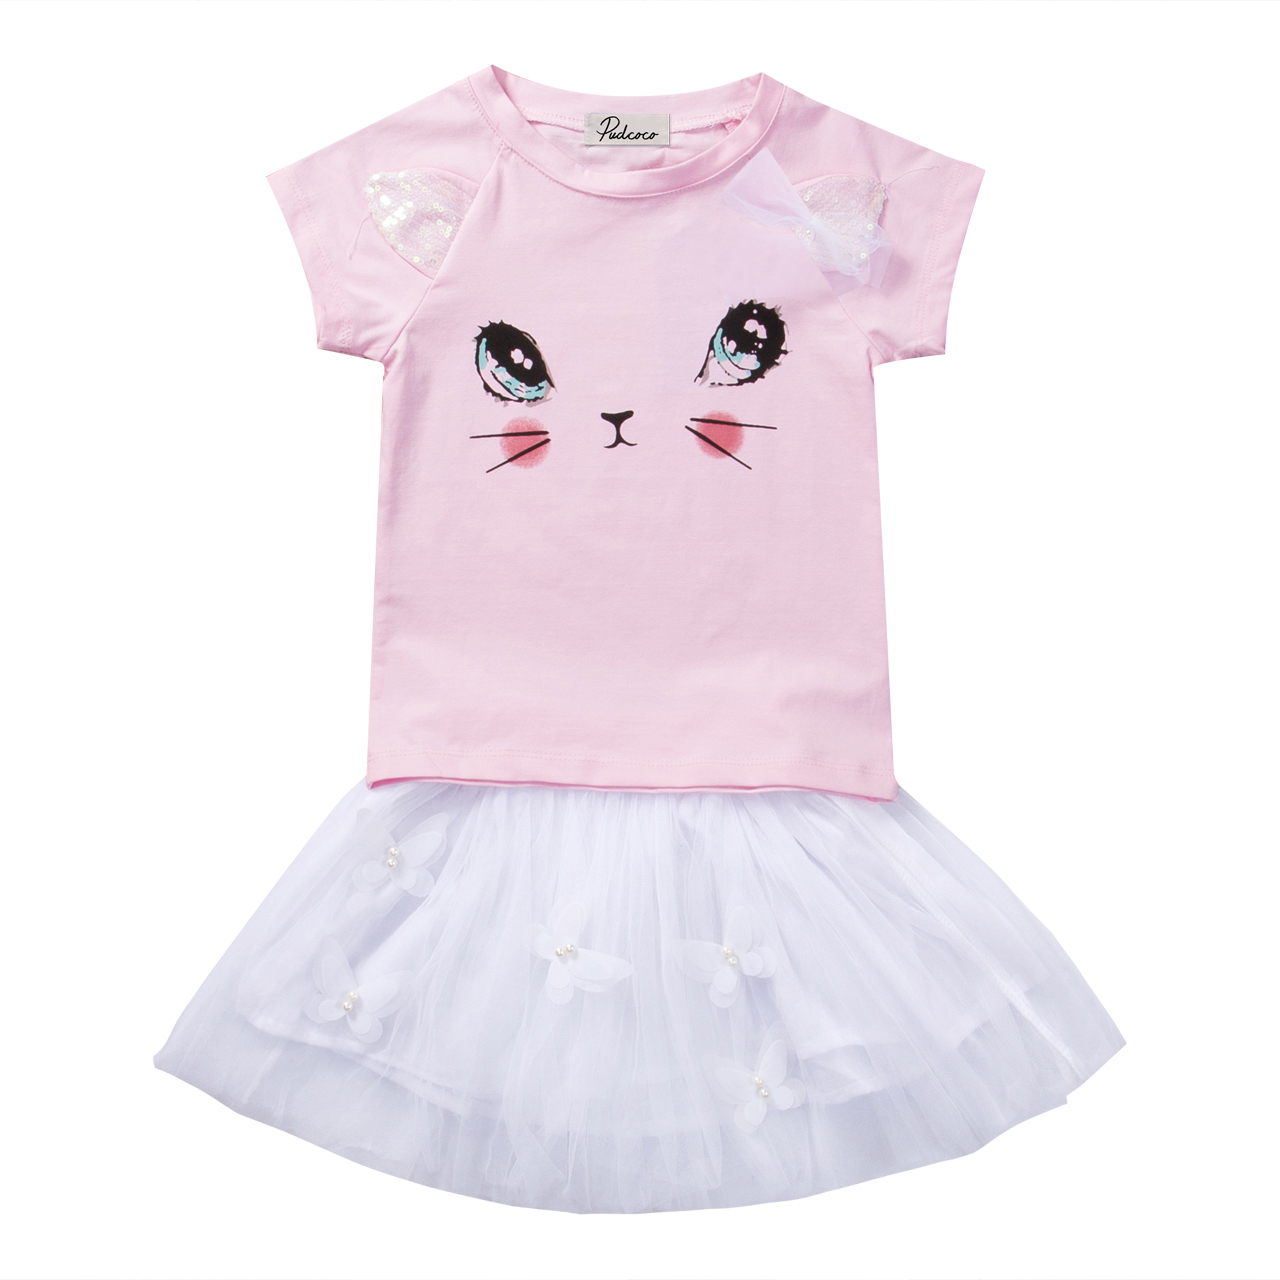 Reliable 2019 Pudcoco Newborn Baby Girl Summer Cotton T-shirt Tops Ruffle Tutu Shorts Outfits Clothes Mother & Kids